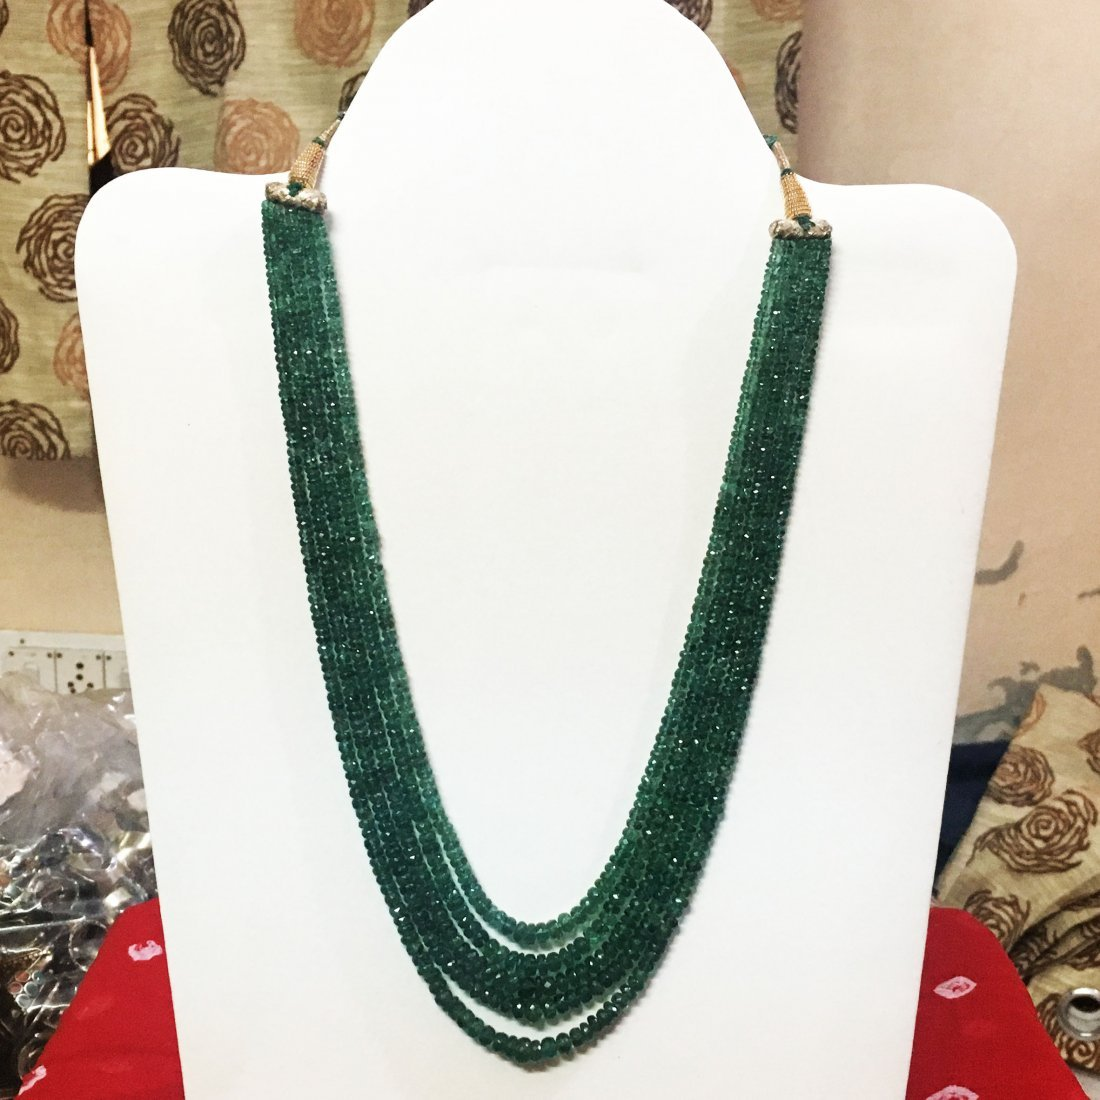 Precious Emerald faceted Beads Necklace 300 Carat